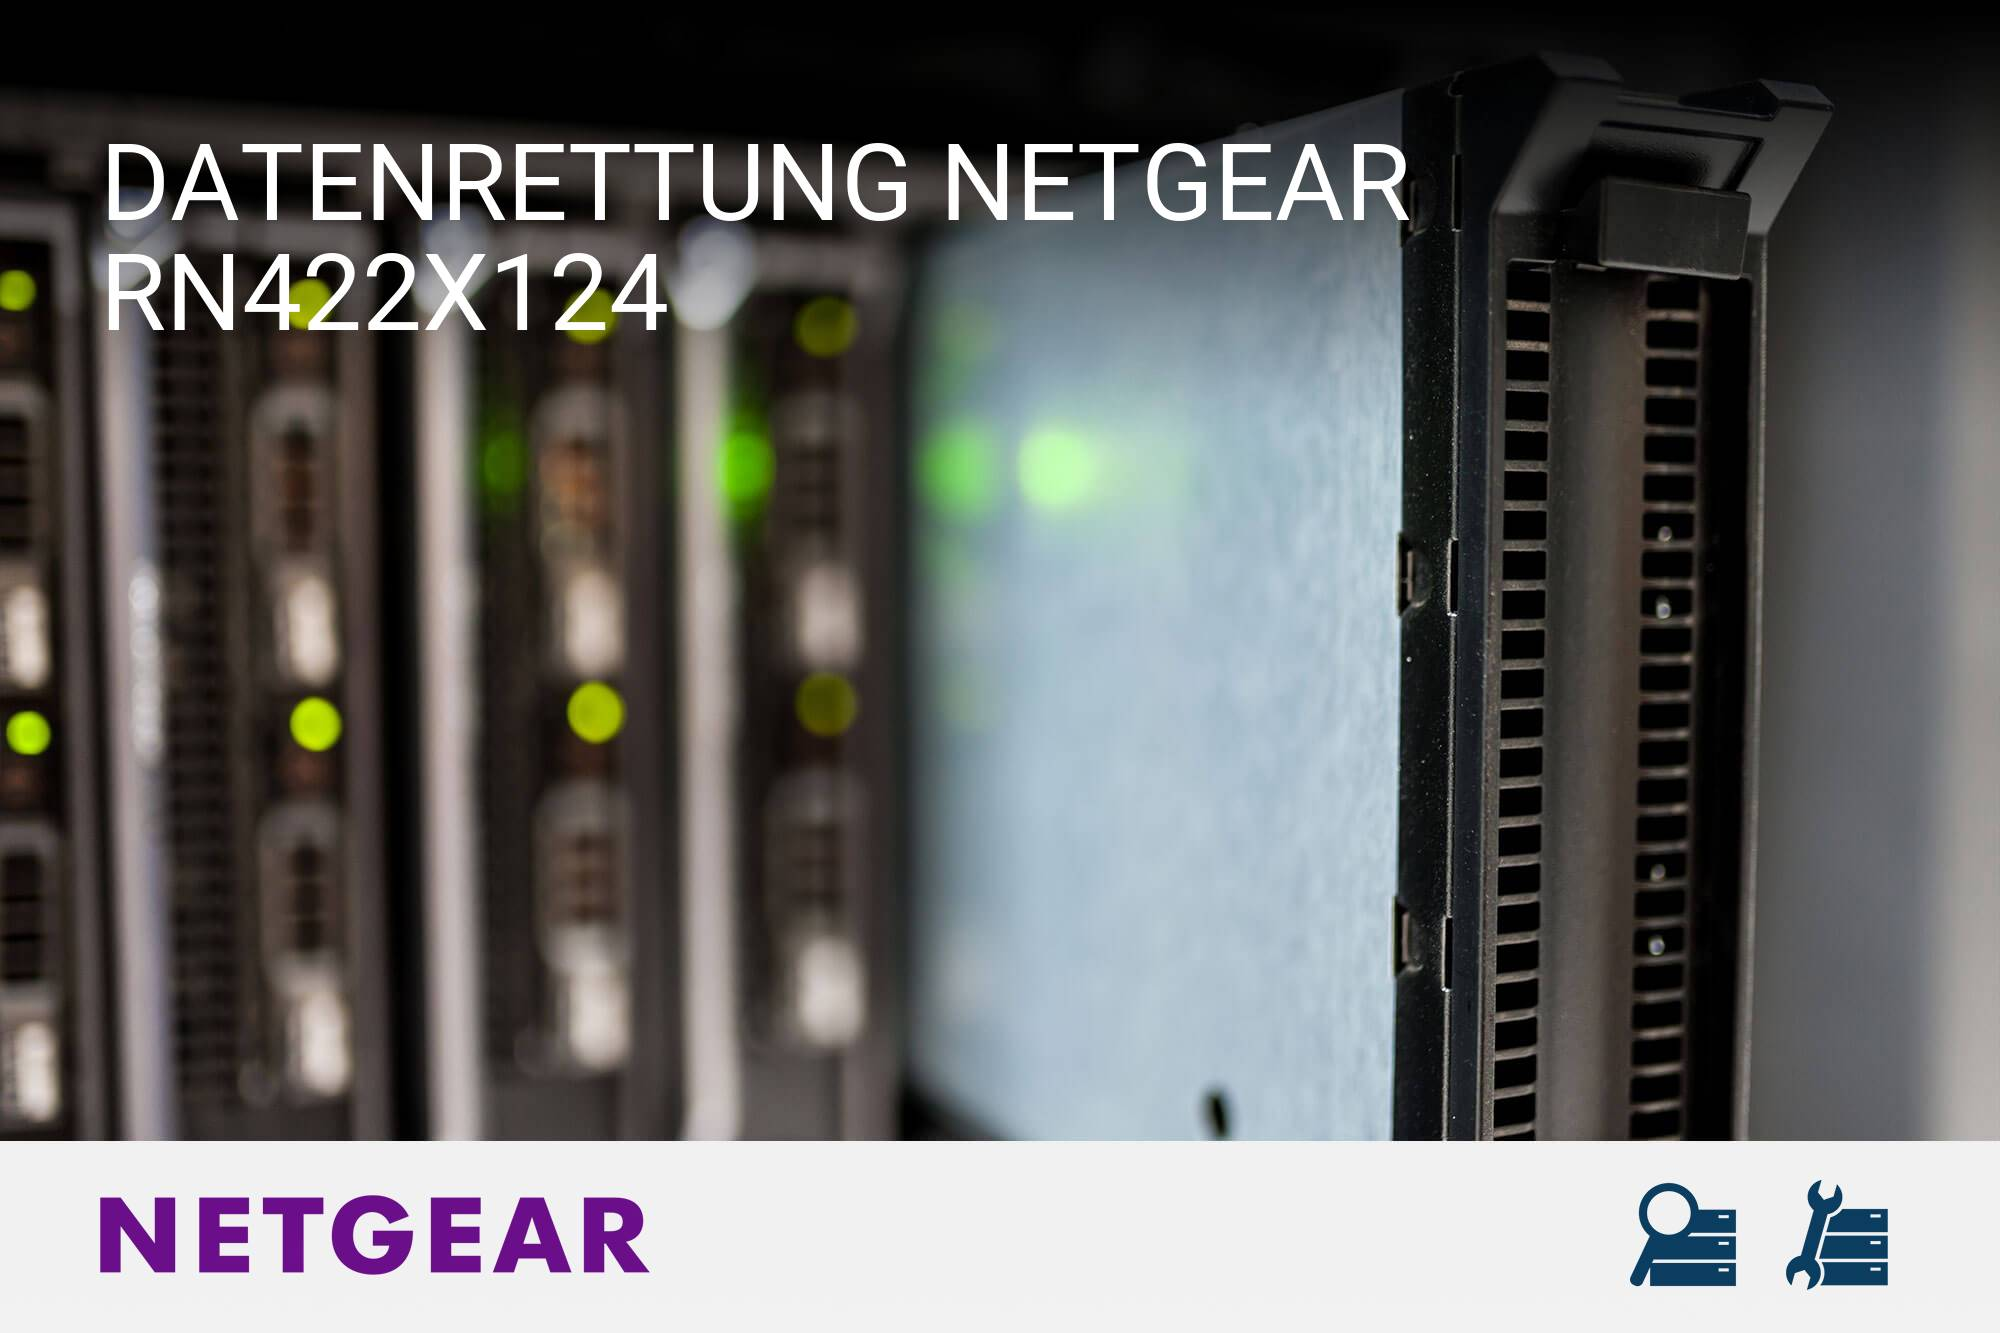 NETGEAR RN422X124 NAS Drivers for PC